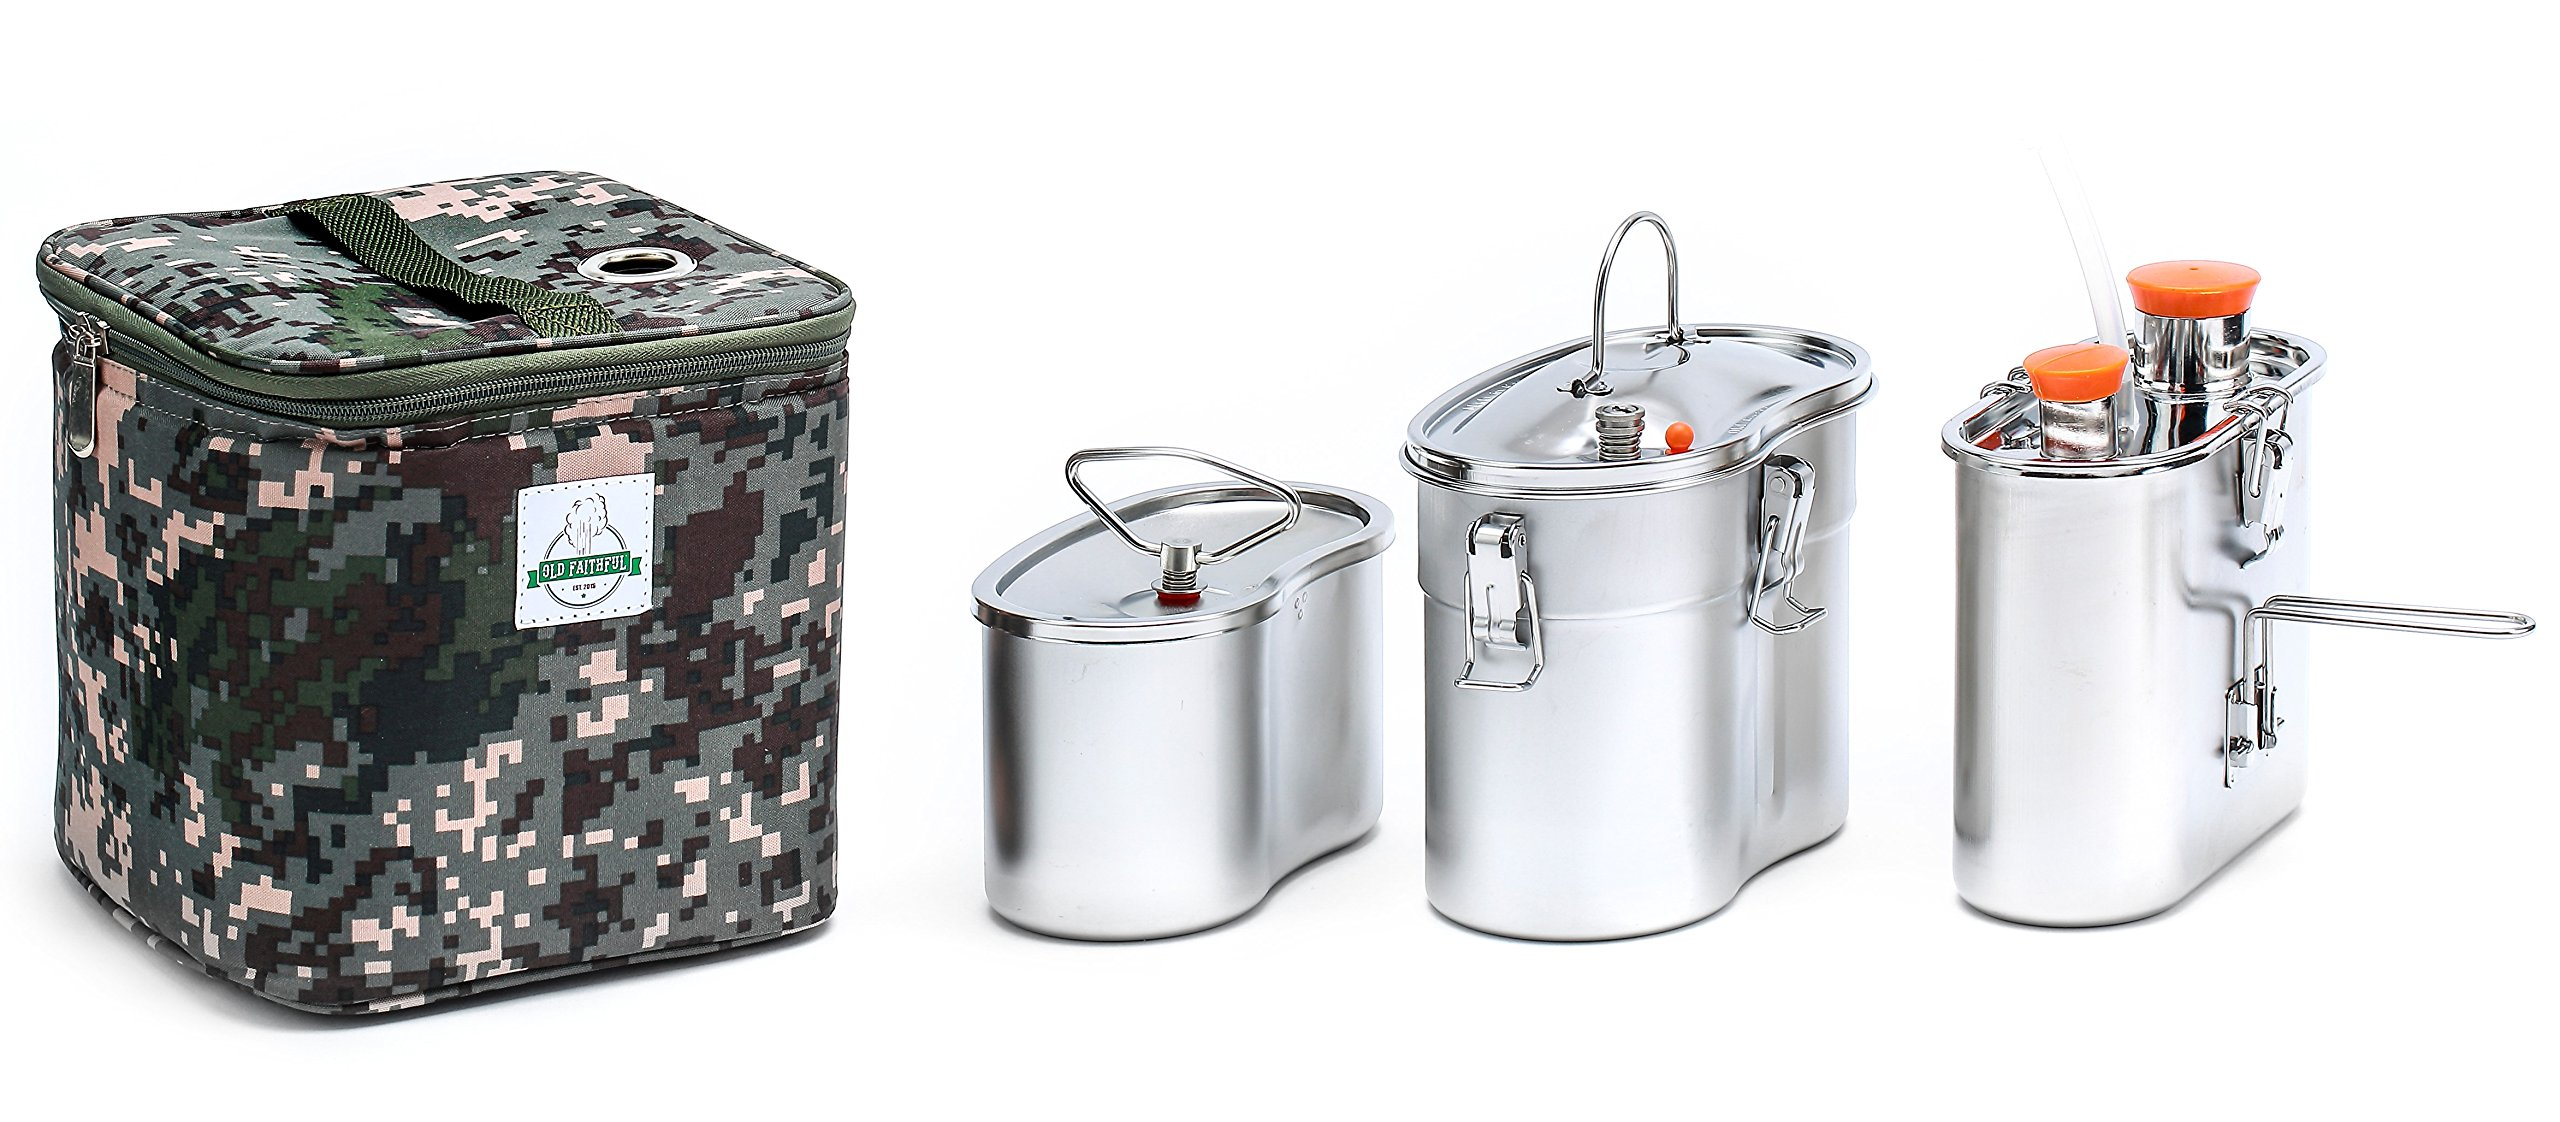 Old Faithful Flameless Geyser Portable Cooking System - Cook Anywhere Without Fire - MRE Freeze Dried Backpacking Camping Emergency Bug Out by Old Faithful EST.2016